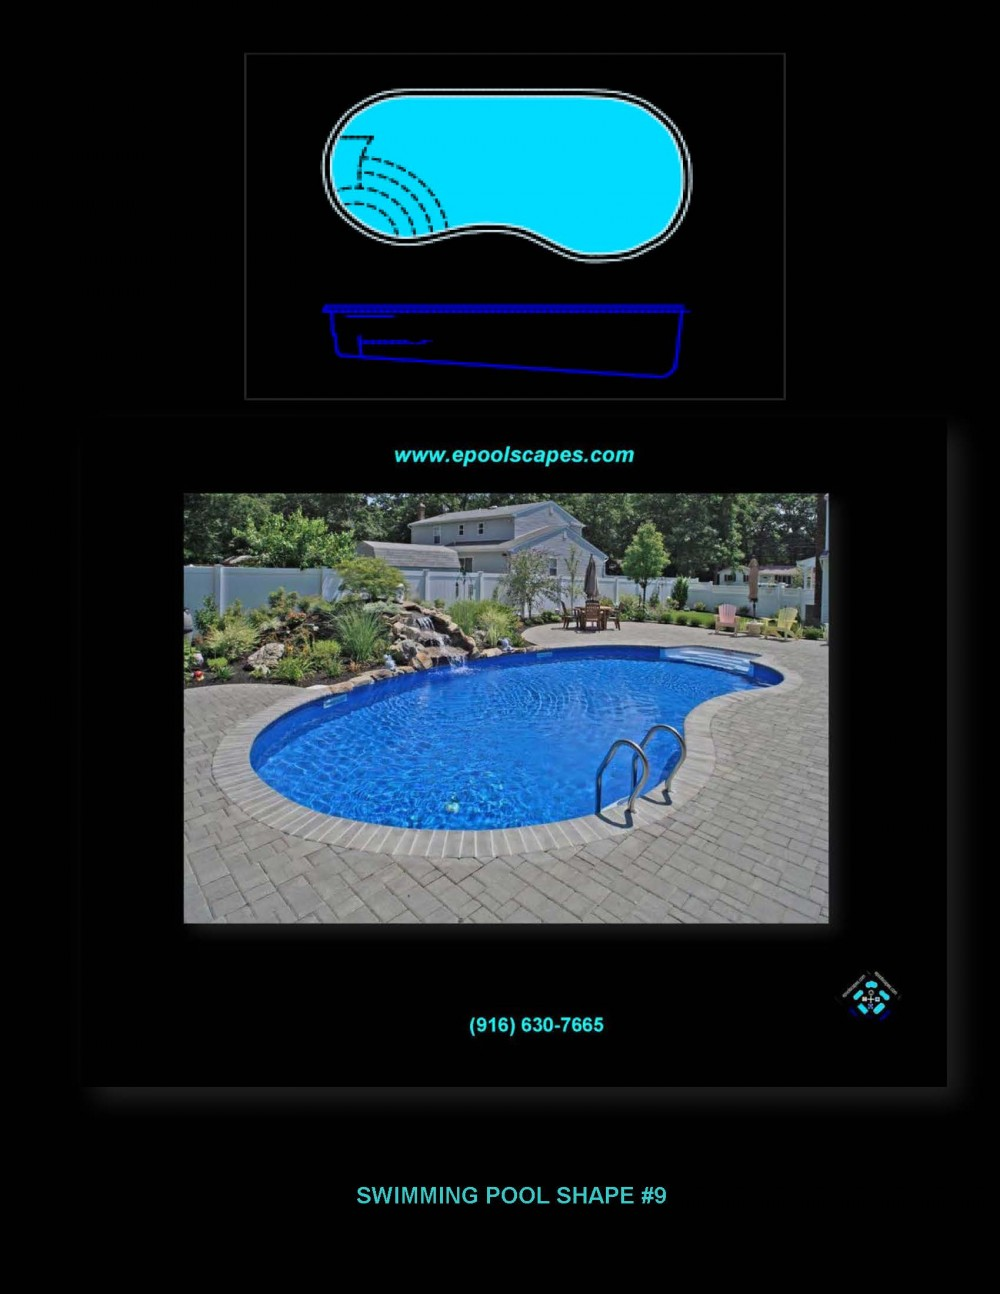 Pool Shape #9